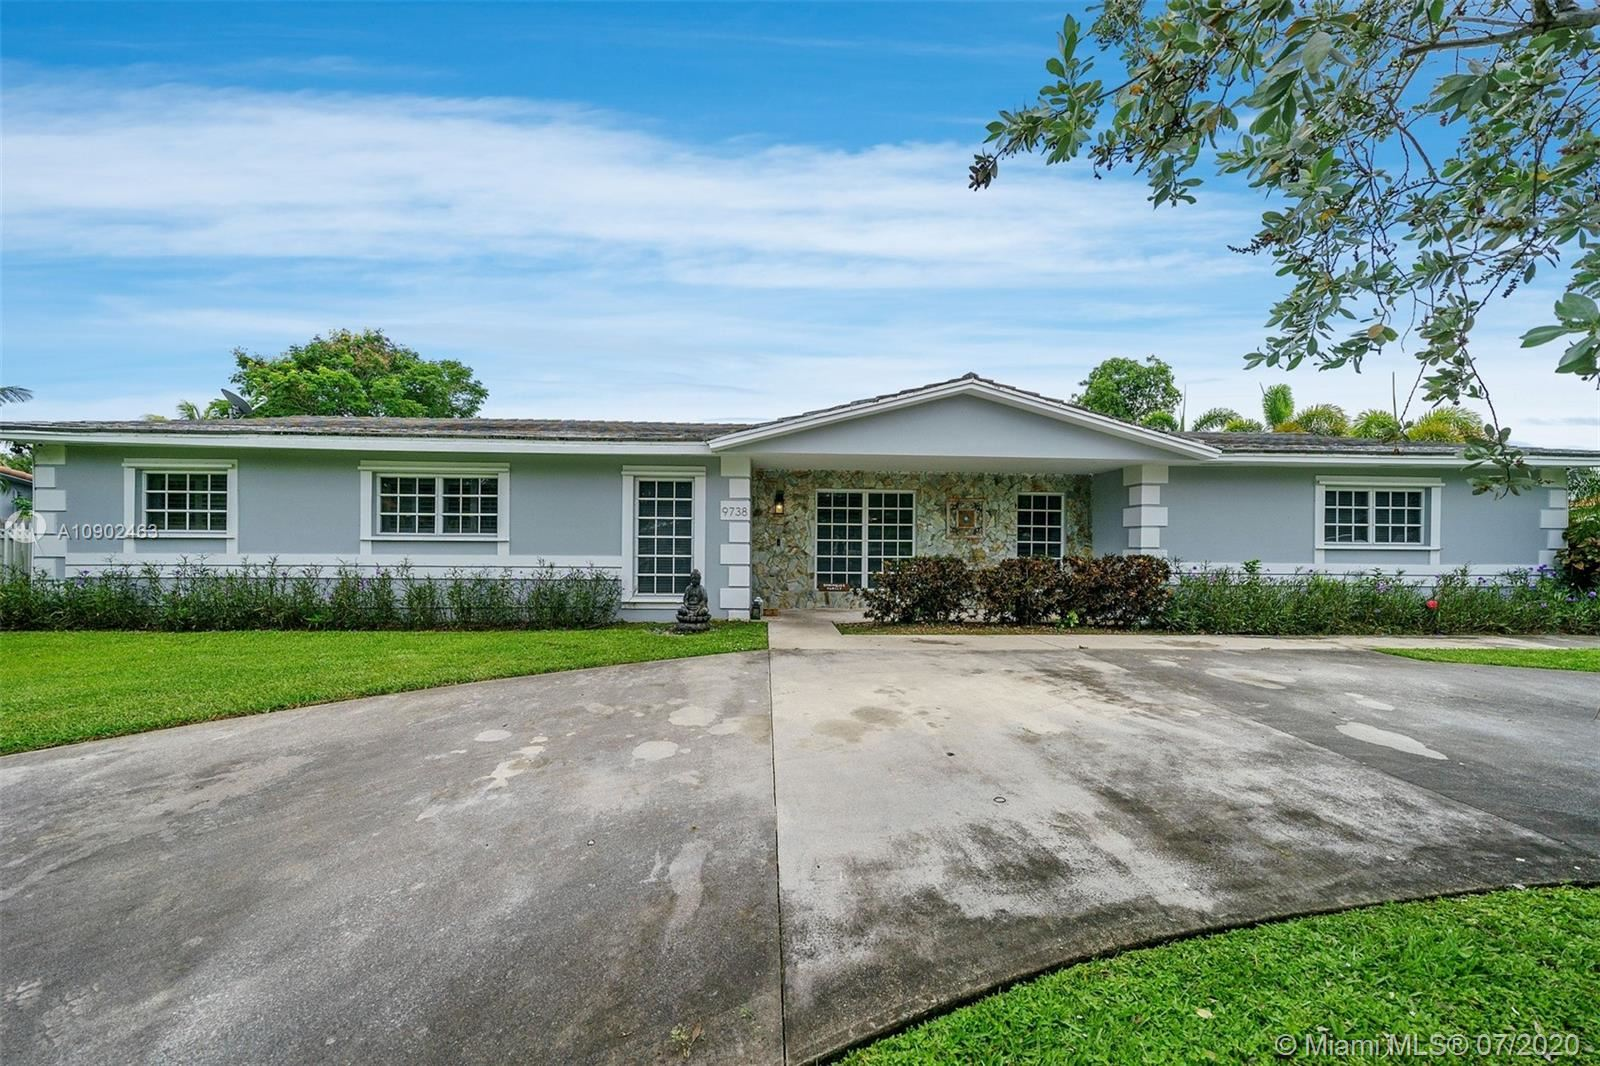 9738 SW 135th Ter, Miami, FL 33176 - #: A10902463